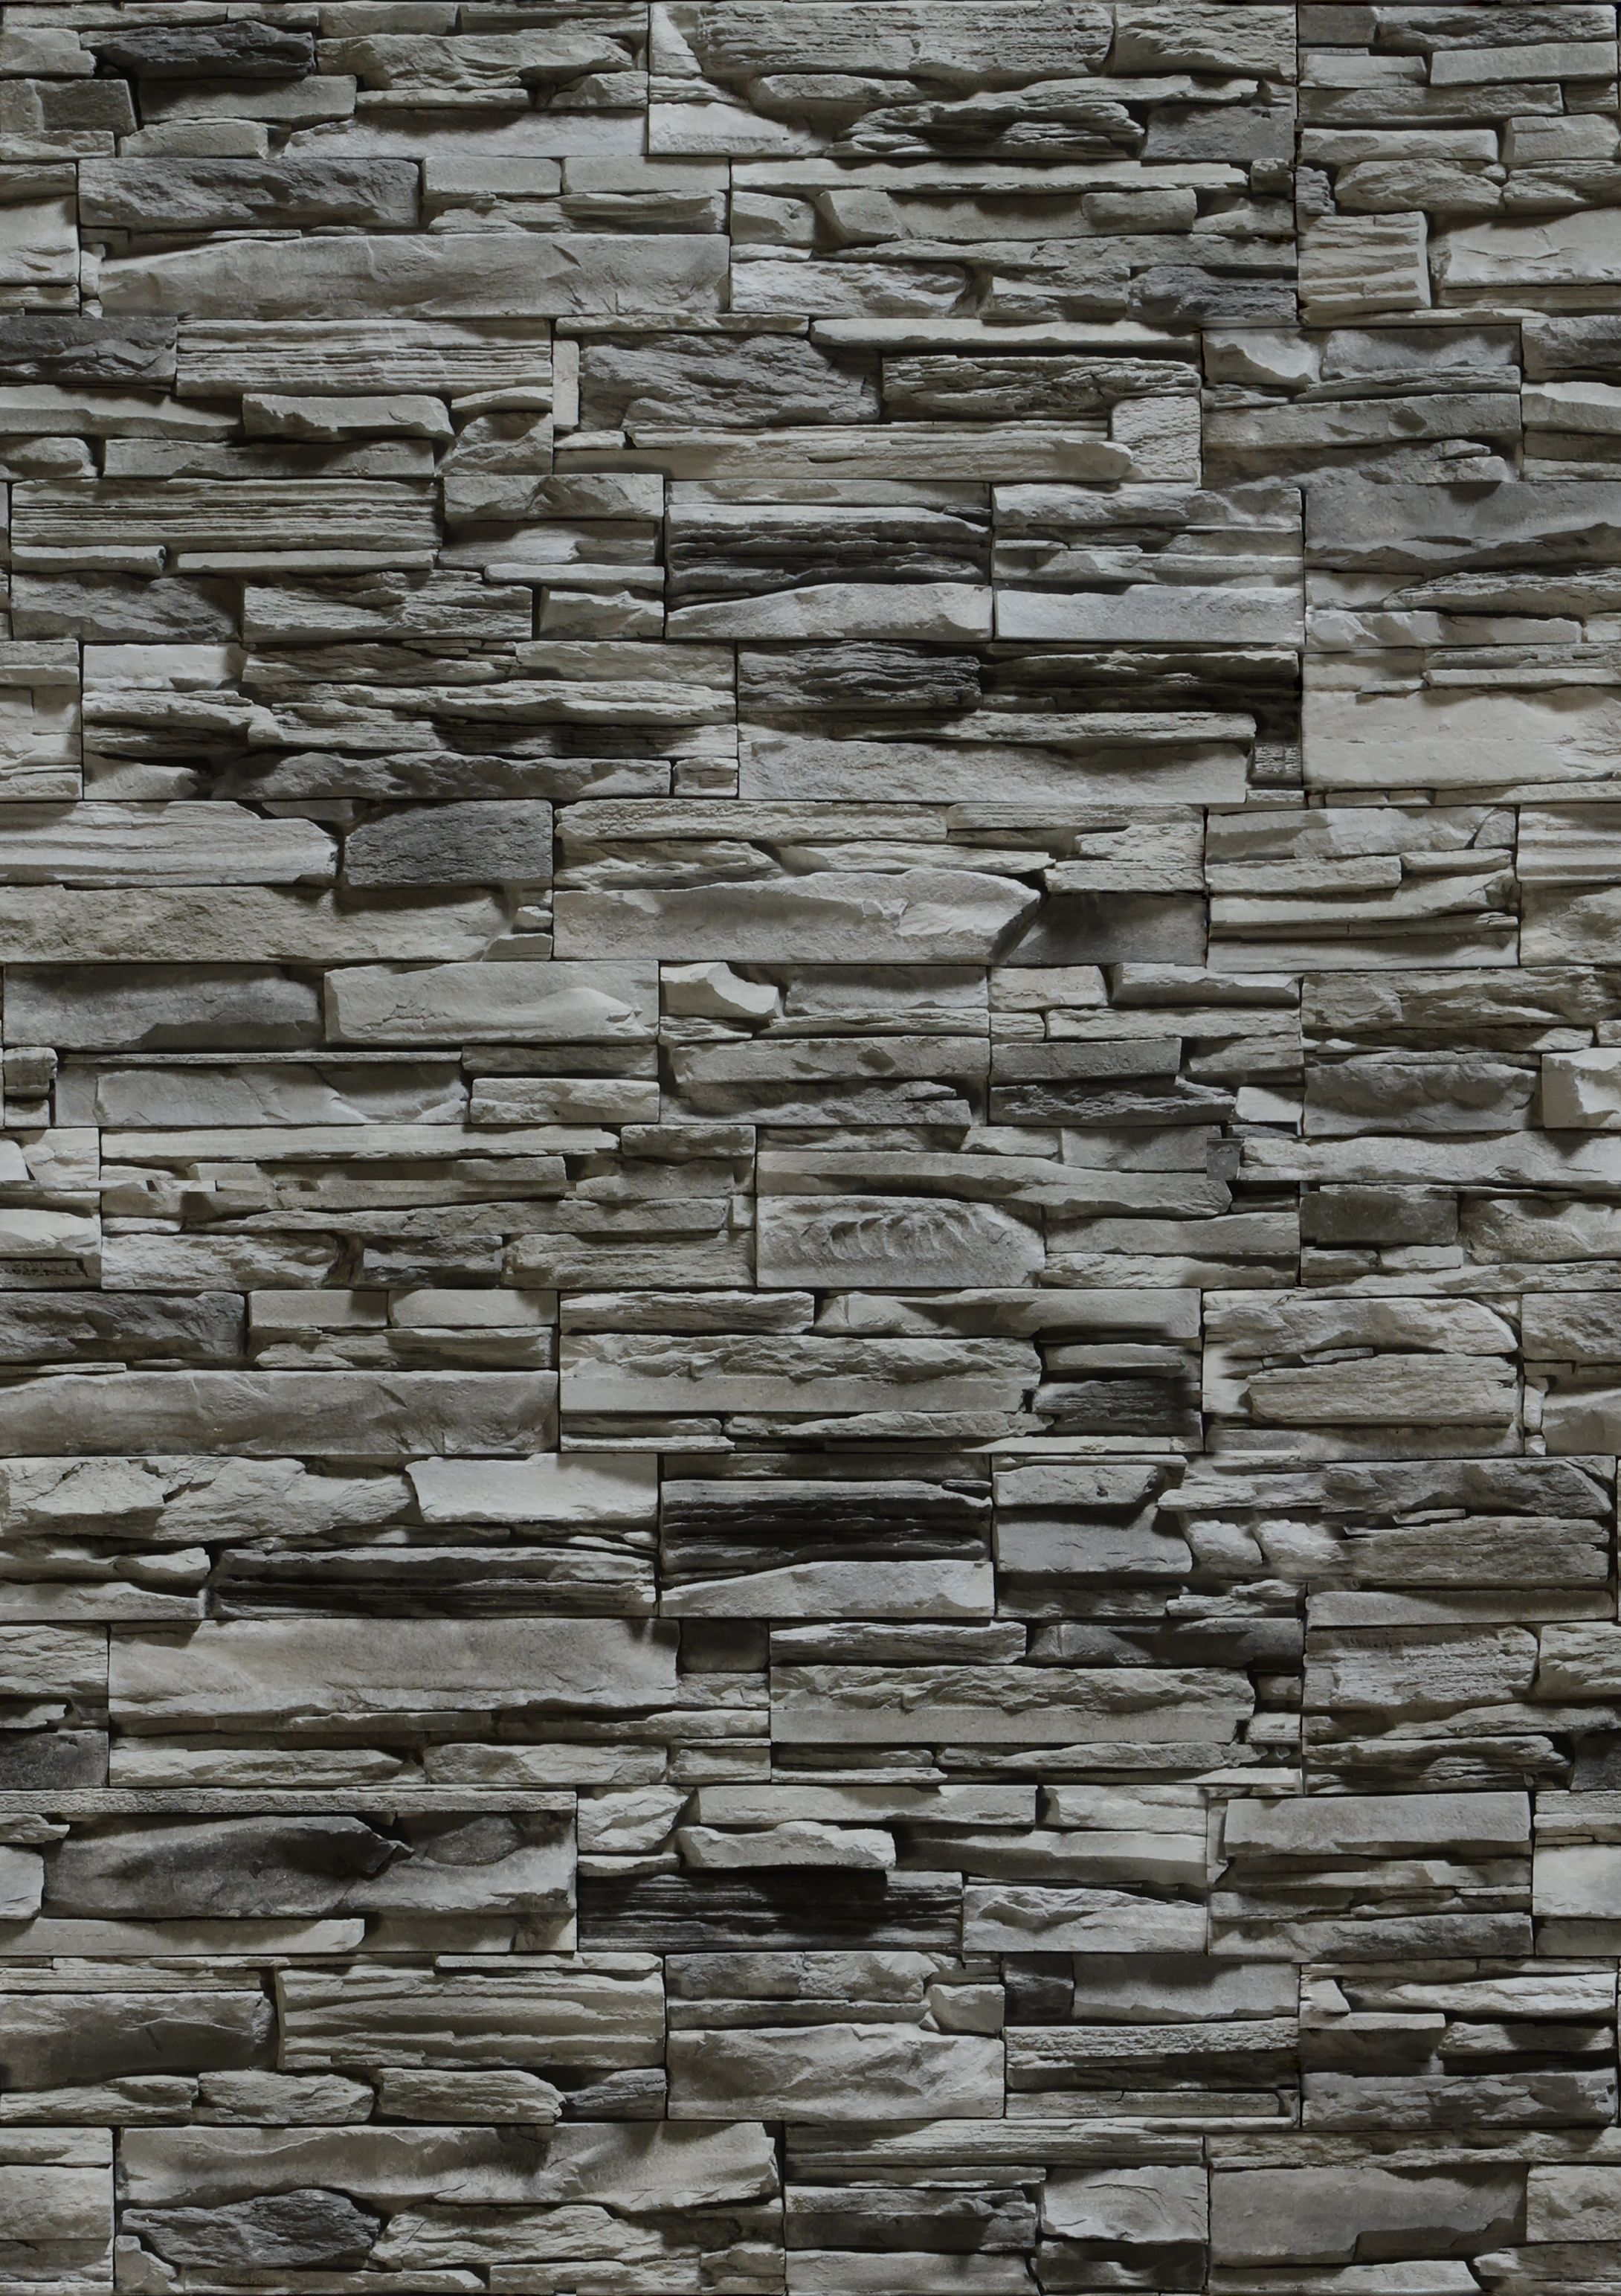 дикий stone, wall, texture stone, stone wall, download